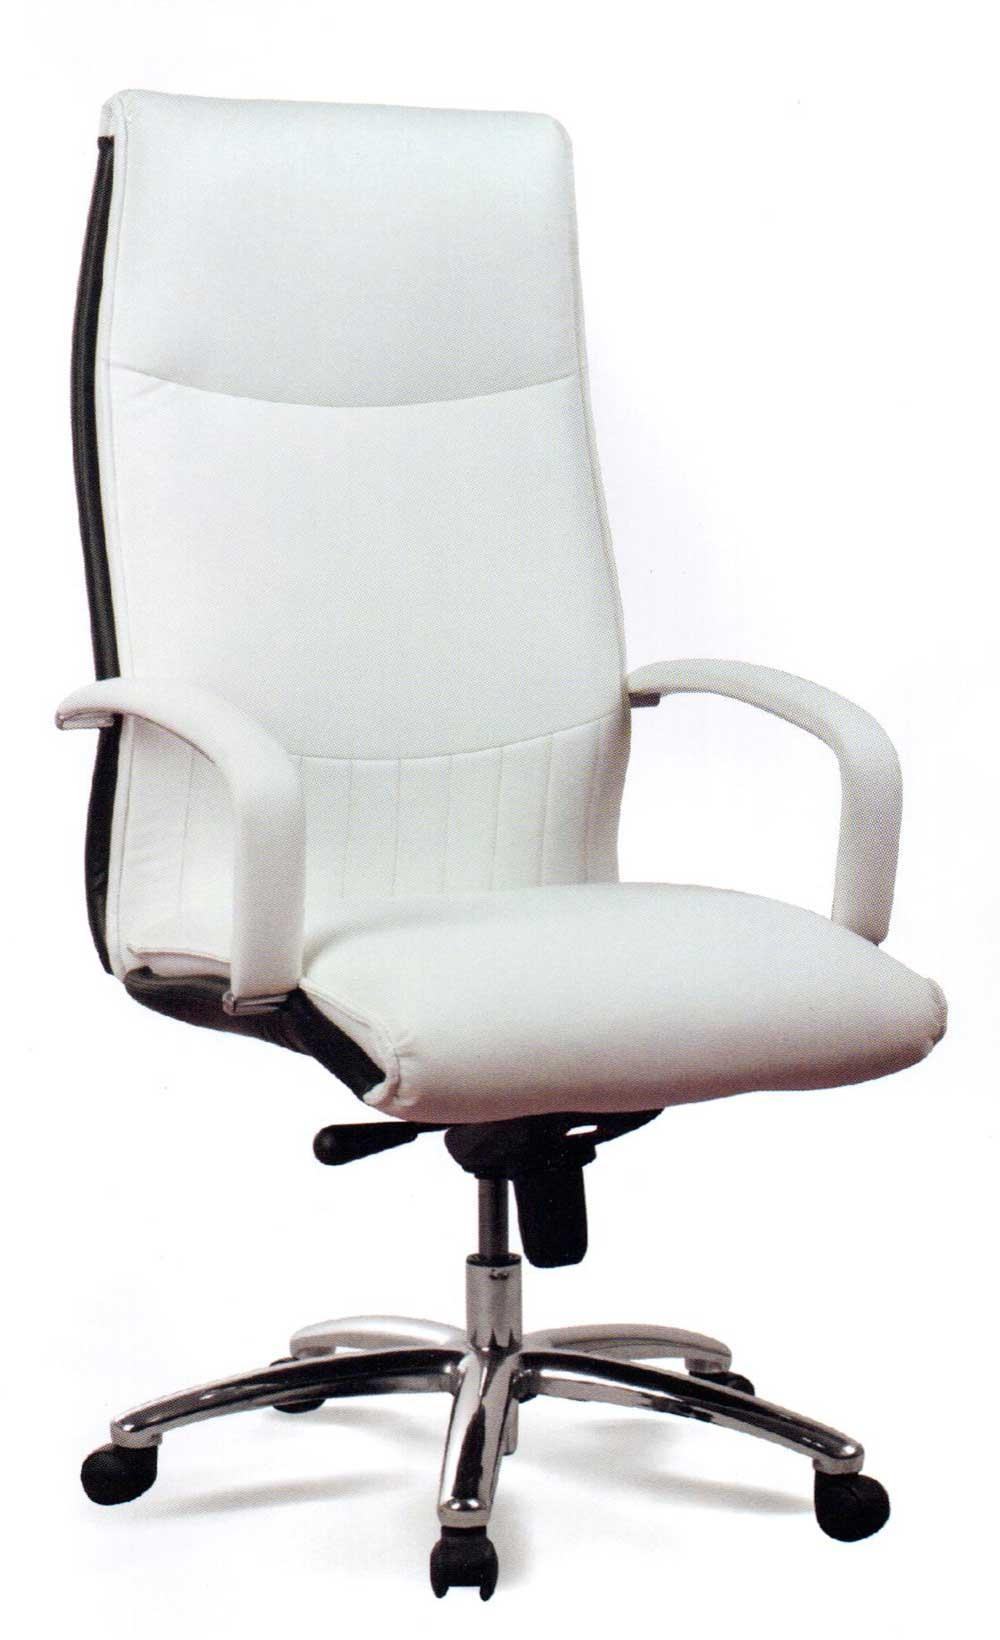 Sofa White Ergonomic Office Chairs | Winafrica For Sofa Desk Chairs (View 8 of 20)